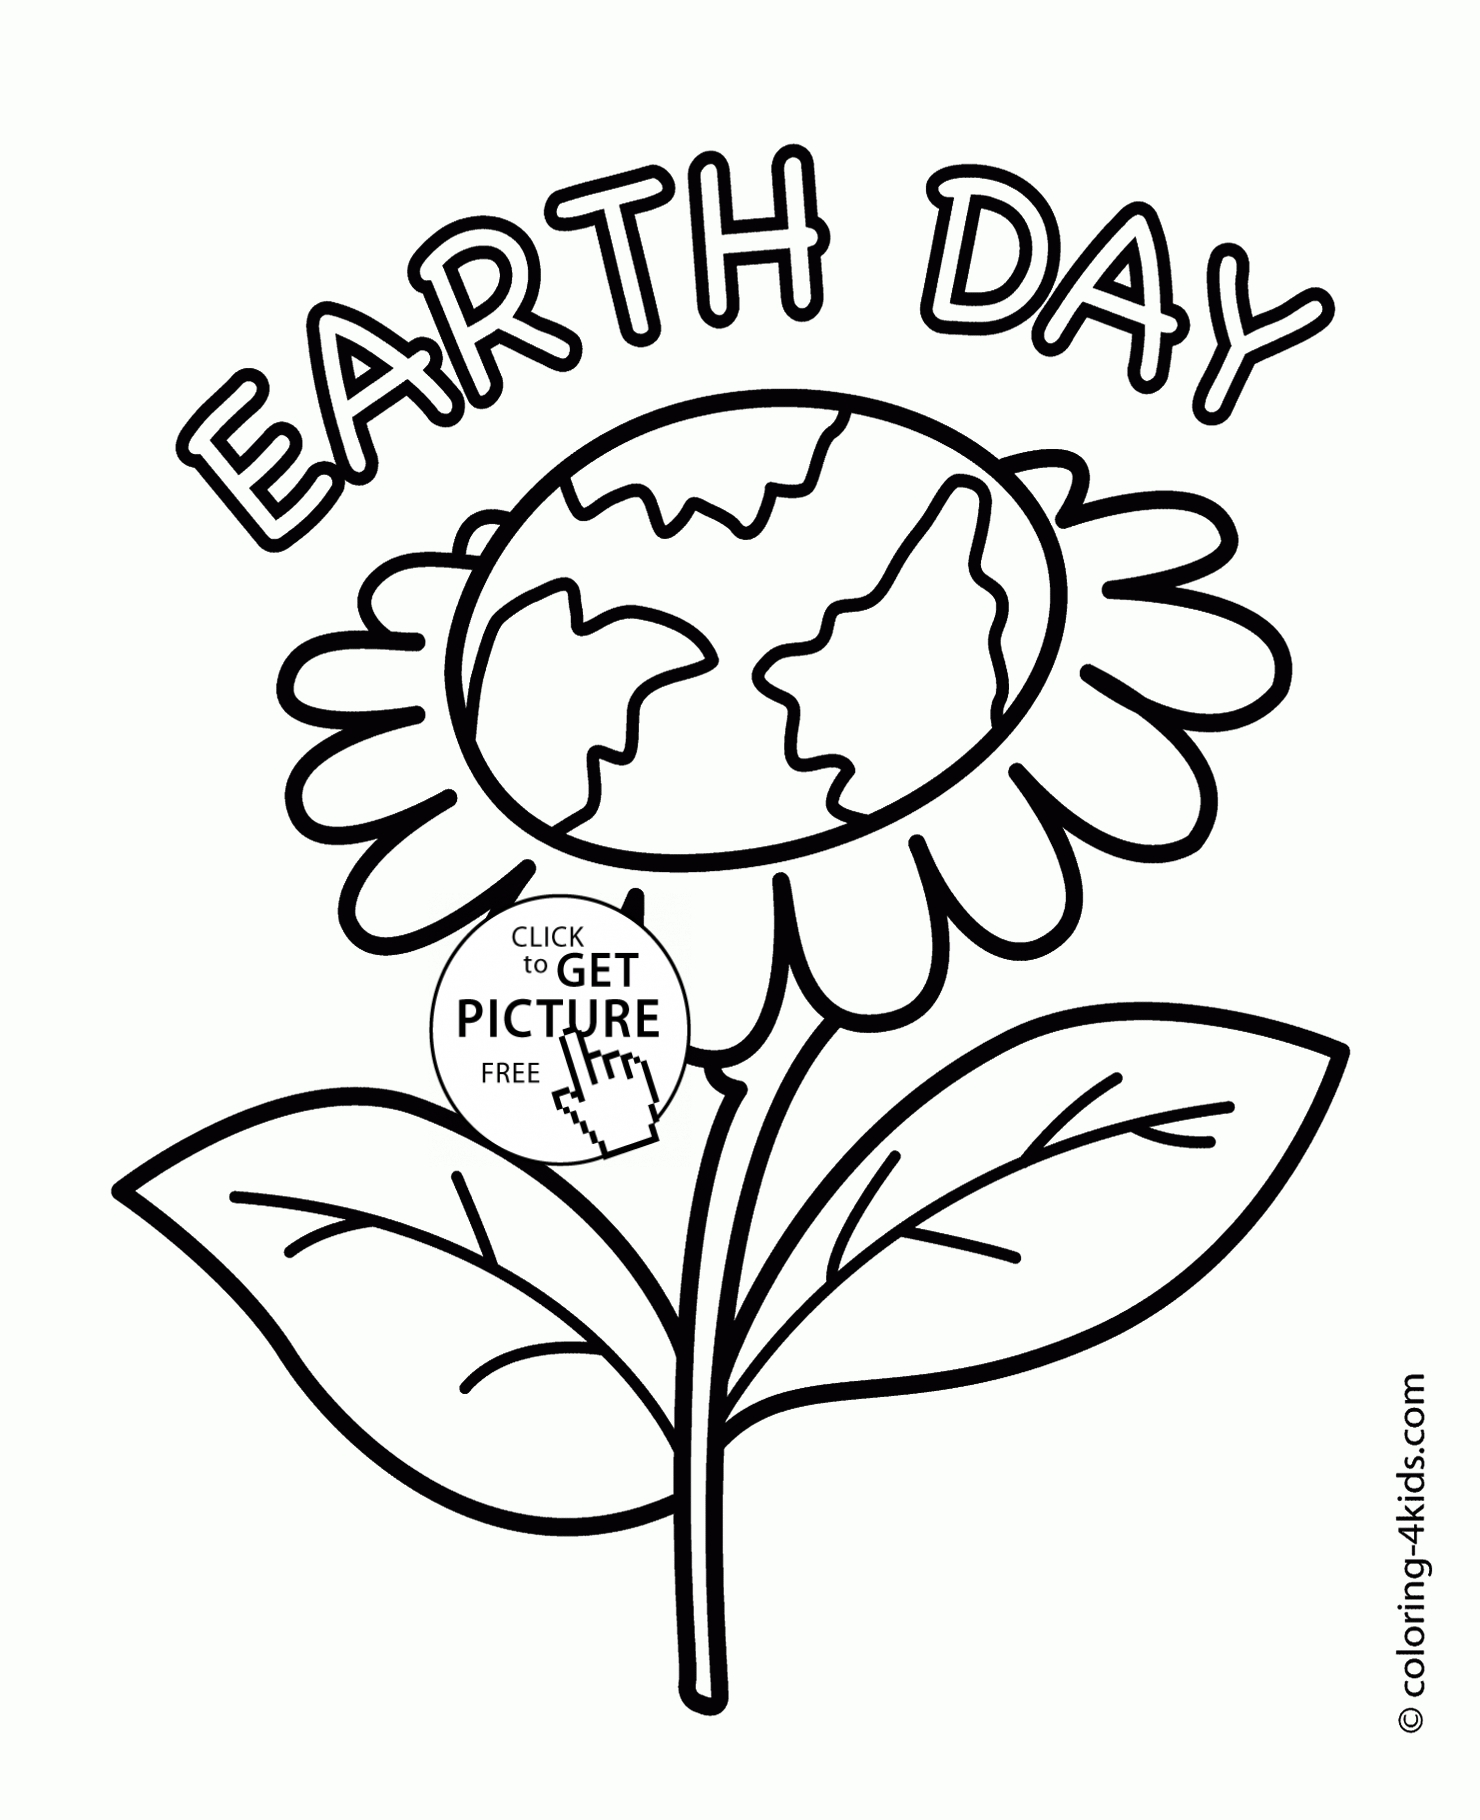 earth day coloring pages - earth flower earth day coloring page for kids coloring pages printables free